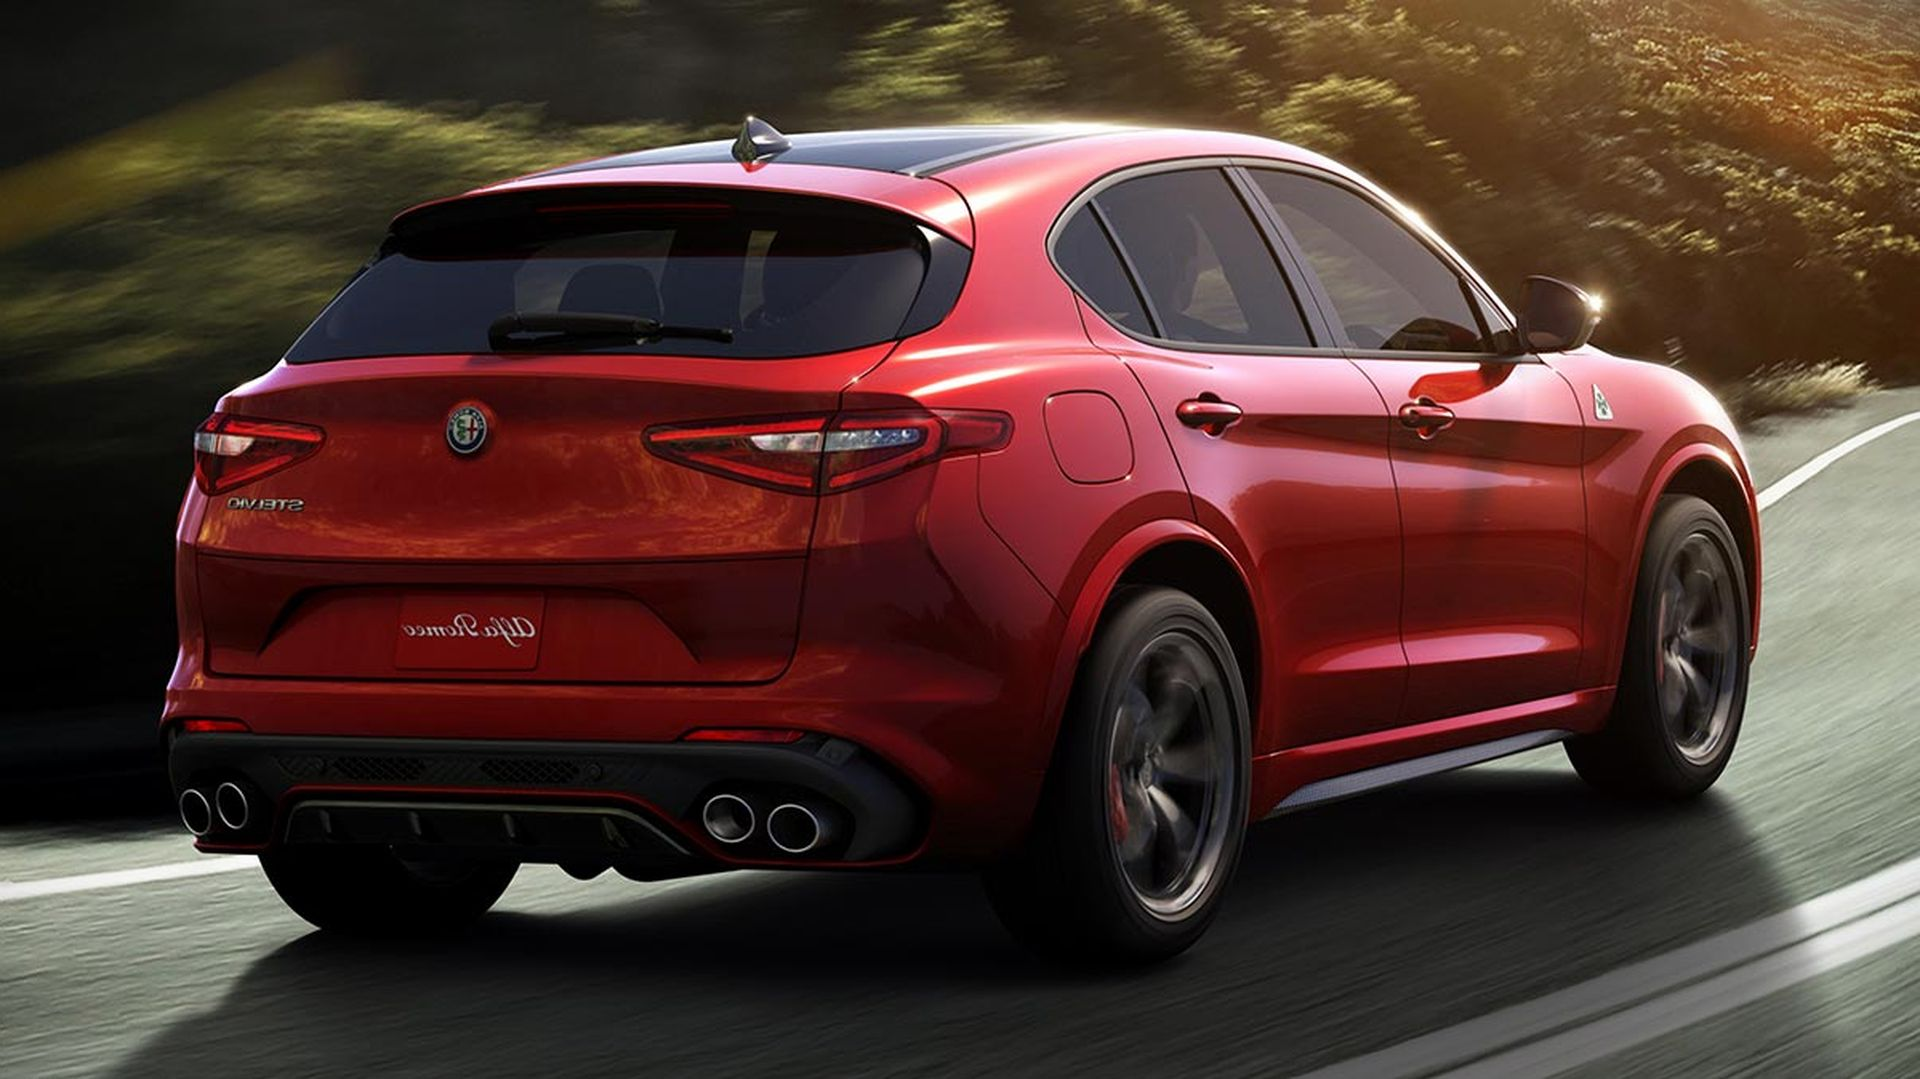 Alfa Romeo Stelvio 2017 press release with 0-60